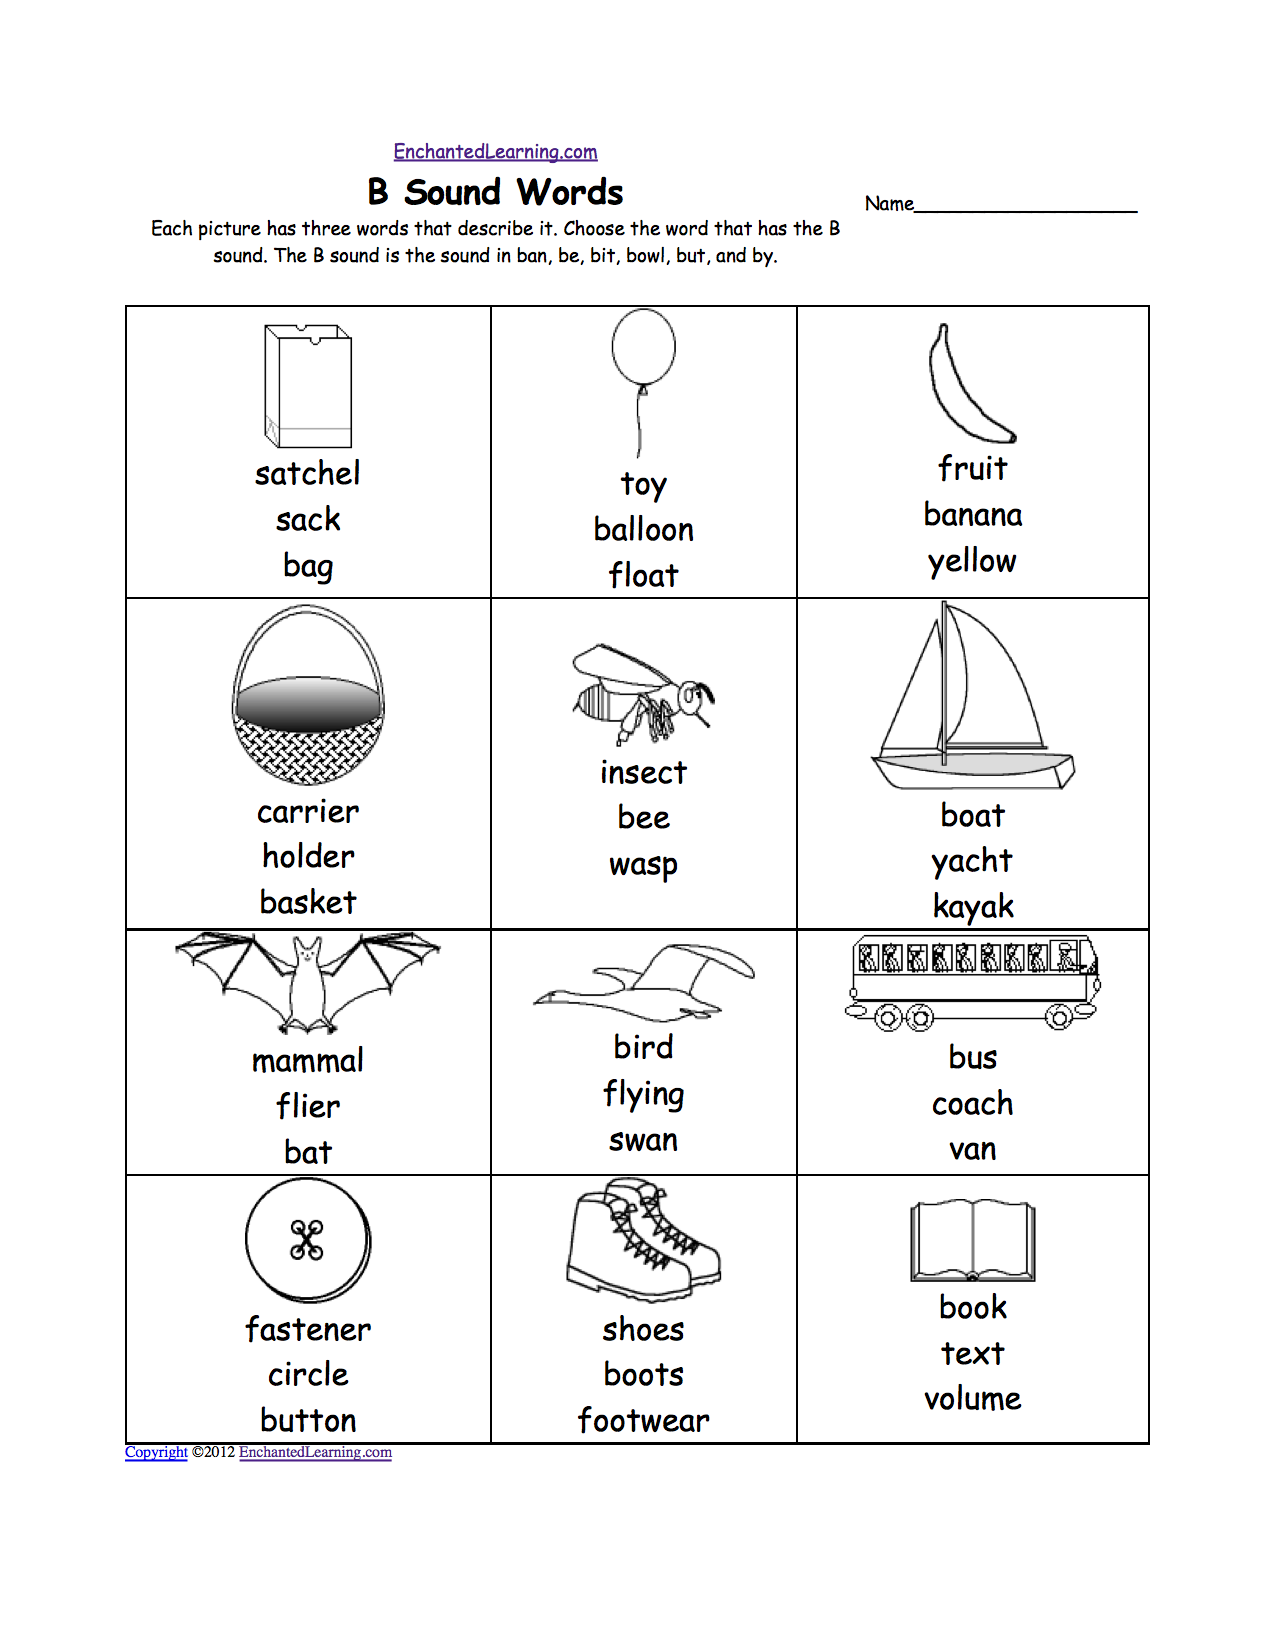 Proatmealus  Outstanding Phonics Worksheets Multiple Choice Worksheets To Print  With Foxy Quotbquot Sound Phonics Worksheet Multiple Choice Each Picture Has Three Words That Describe It Choose The Word That Has A Quotbquot Sound The Quotbquot Sound Is The Sound  With Enchanting Verb Subject Agreement Worksheets Also Adjective Worksheet For Nd Grade In Addition Reading Comprehension Grade  Worksheets And Algebra Vocabulary Worksheets As Well As Ordinal Number Worksheets For Kindergarten Additionally Math Worksheets Th Grade Free From Enchantedlearningcom With Proatmealus  Foxy Phonics Worksheets Multiple Choice Worksheets To Print  With Enchanting Quotbquot Sound Phonics Worksheet Multiple Choice Each Picture Has Three Words That Describe It Choose The Word That Has A Quotbquot Sound The Quotbquot Sound Is The Sound  And Outstanding Verb Subject Agreement Worksheets Also Adjective Worksheet For Nd Grade In Addition Reading Comprehension Grade  Worksheets From Enchantedlearningcom